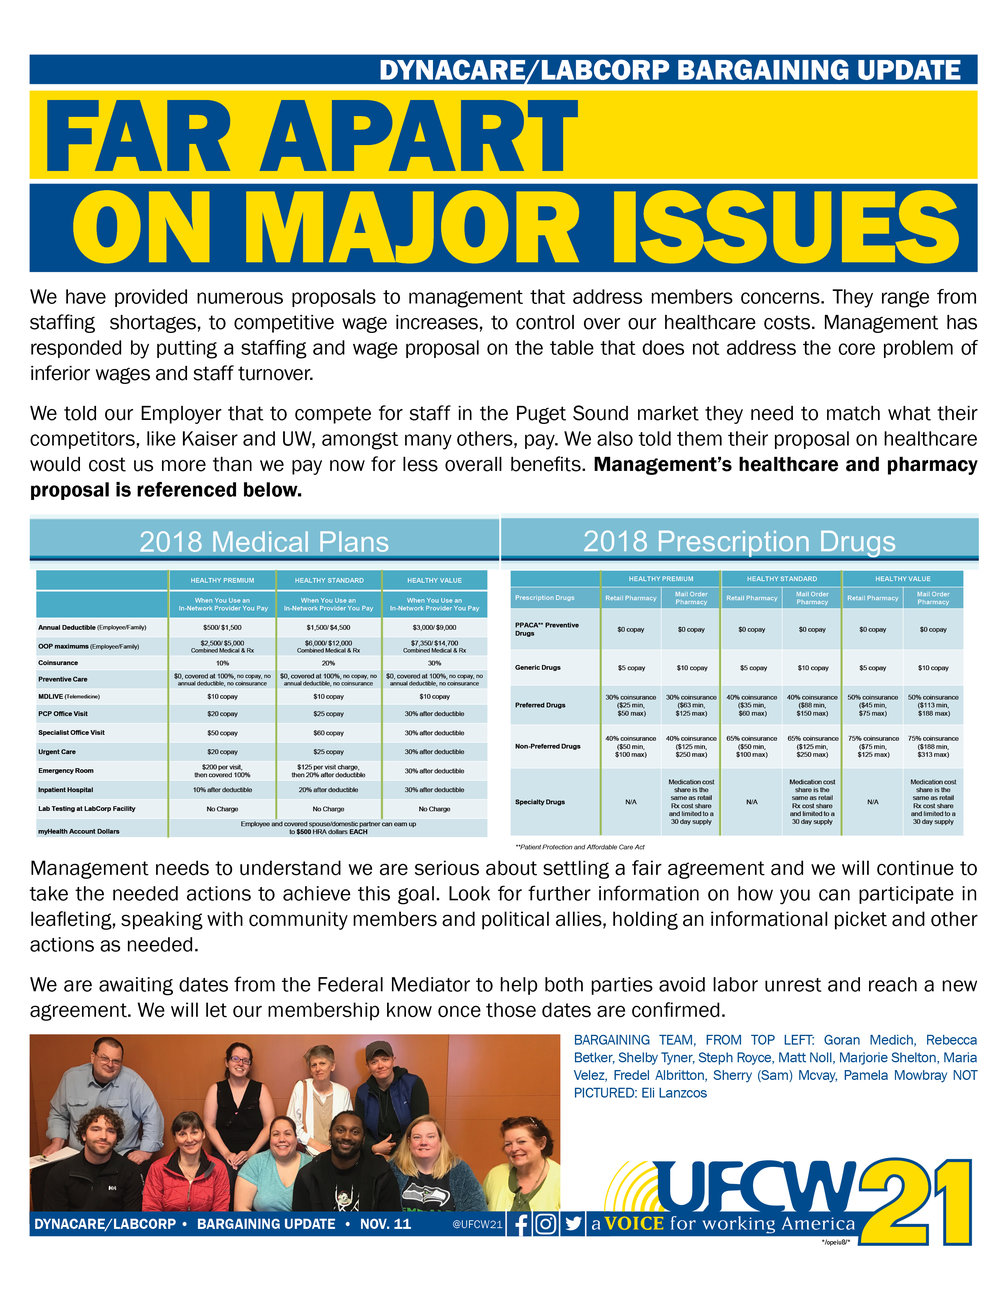 2017 1108 Dynacare Labcorp bargaining update handout.jpg